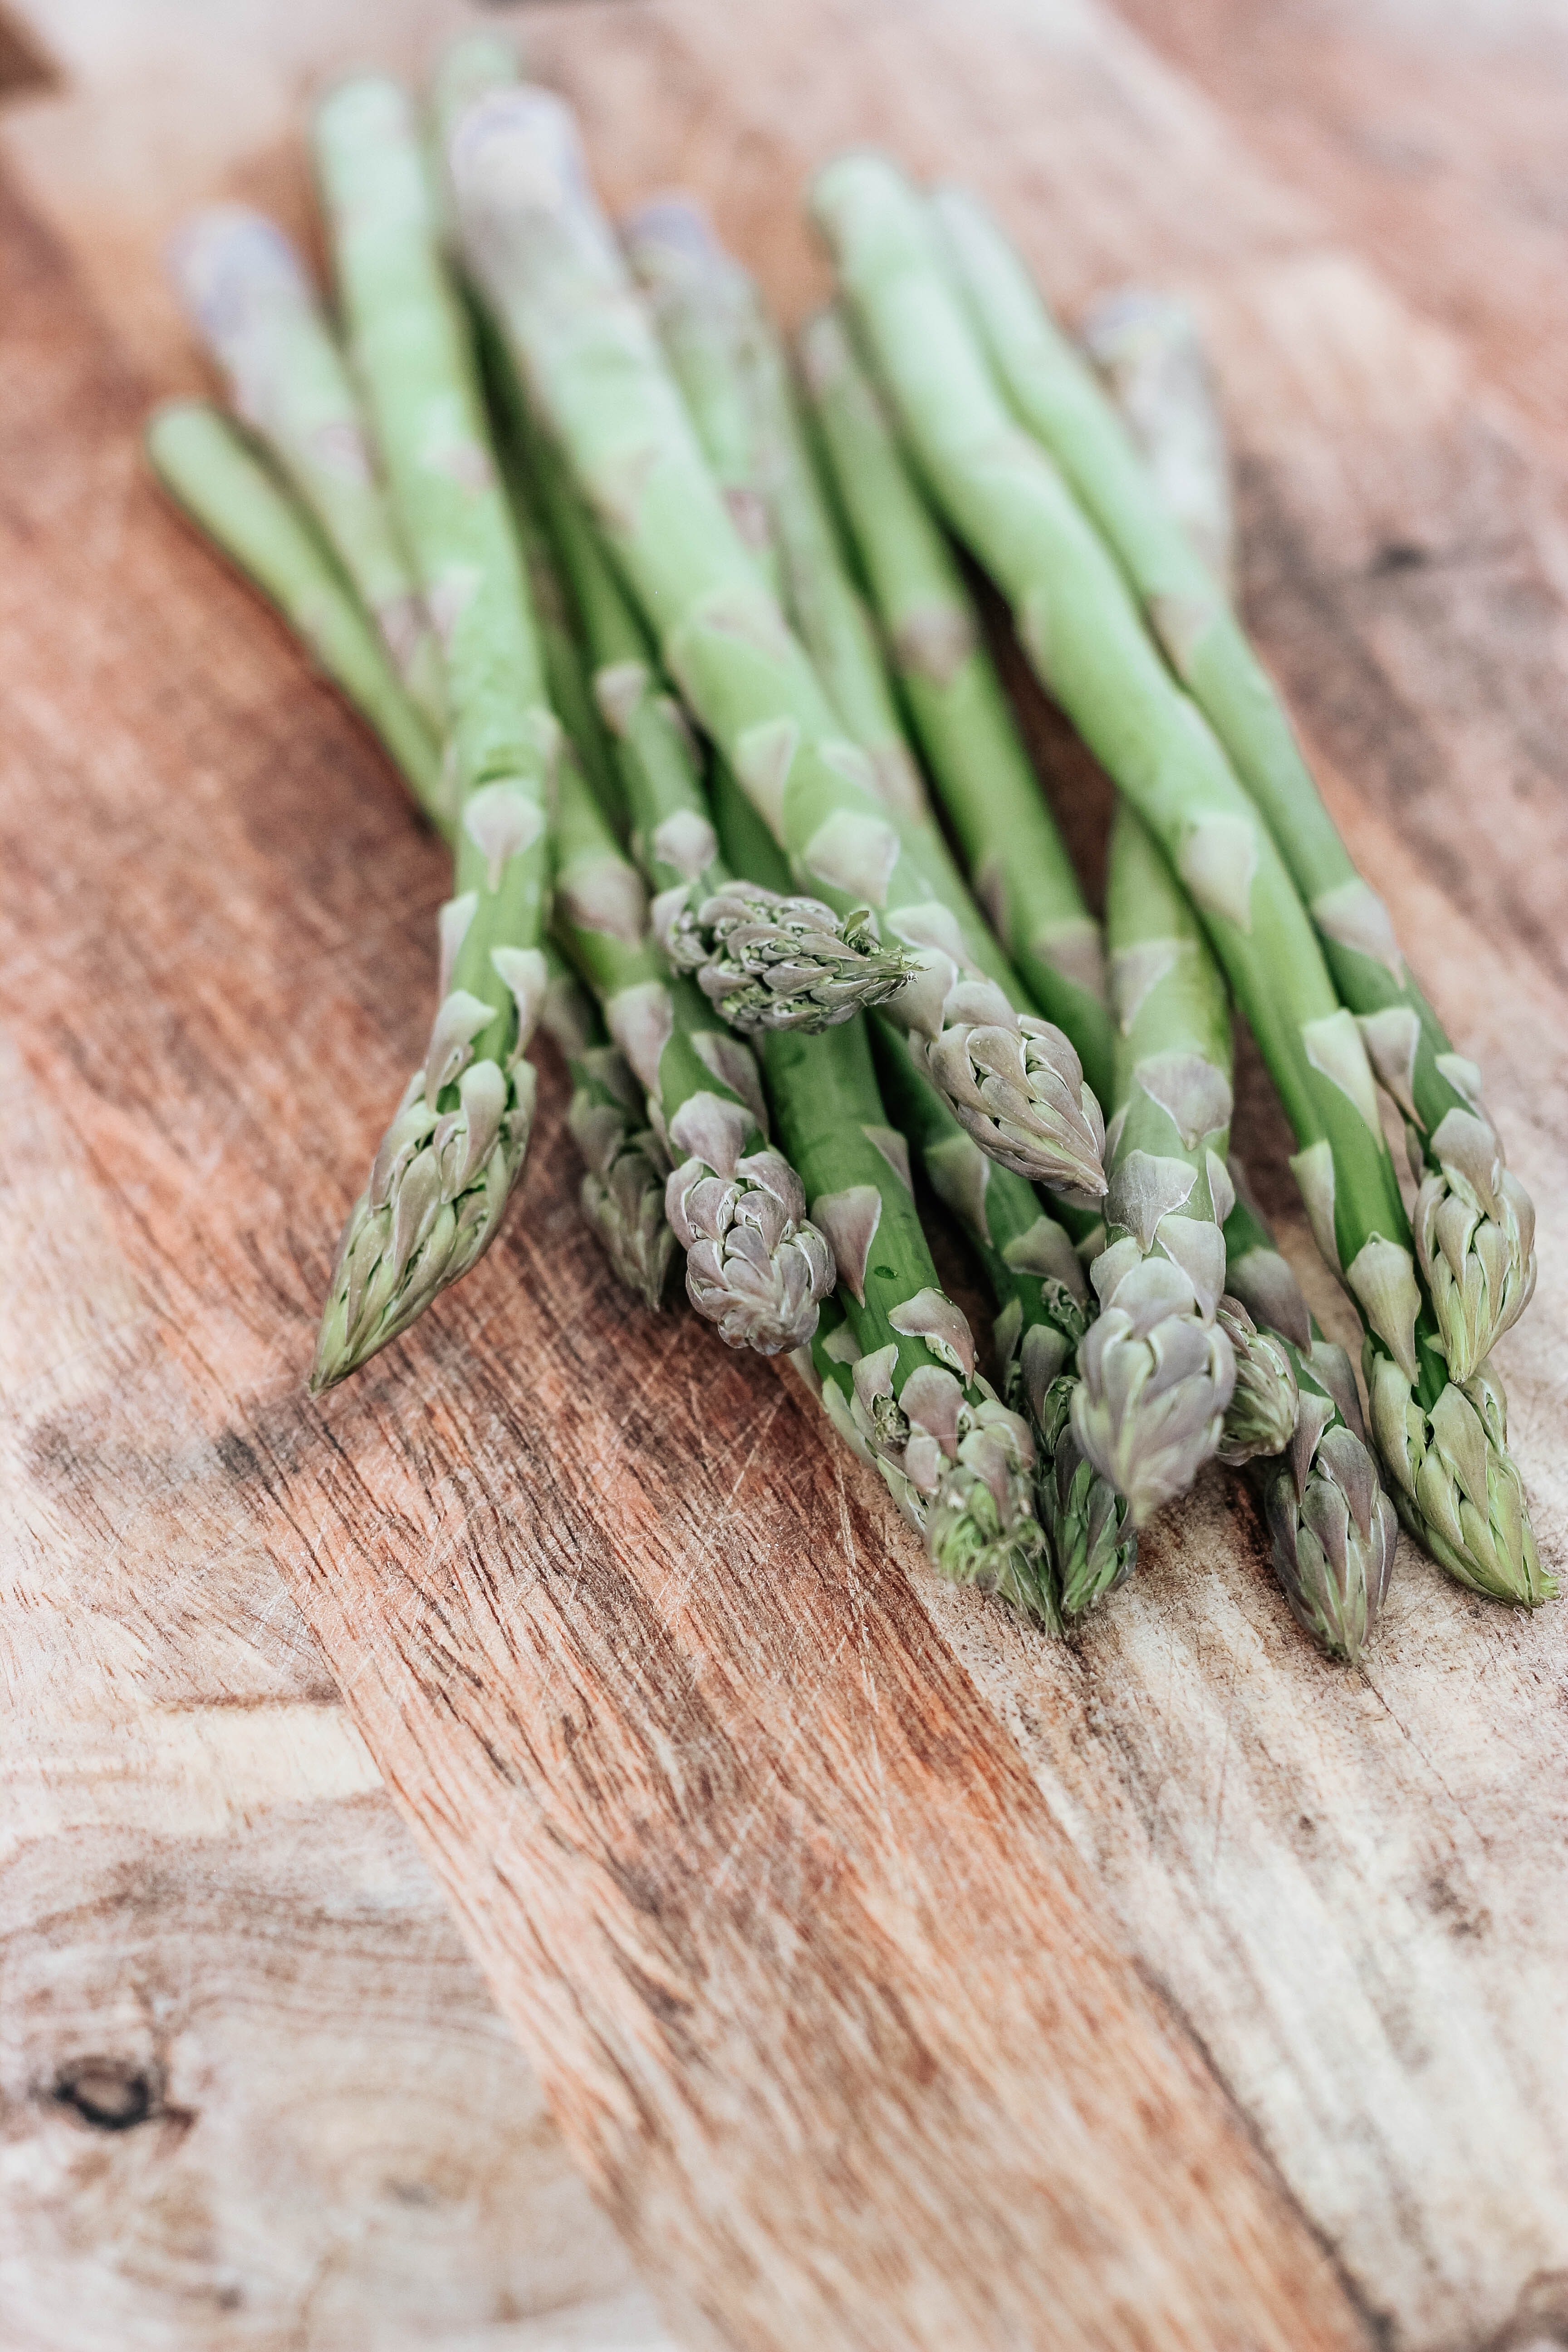 Asparagus on board